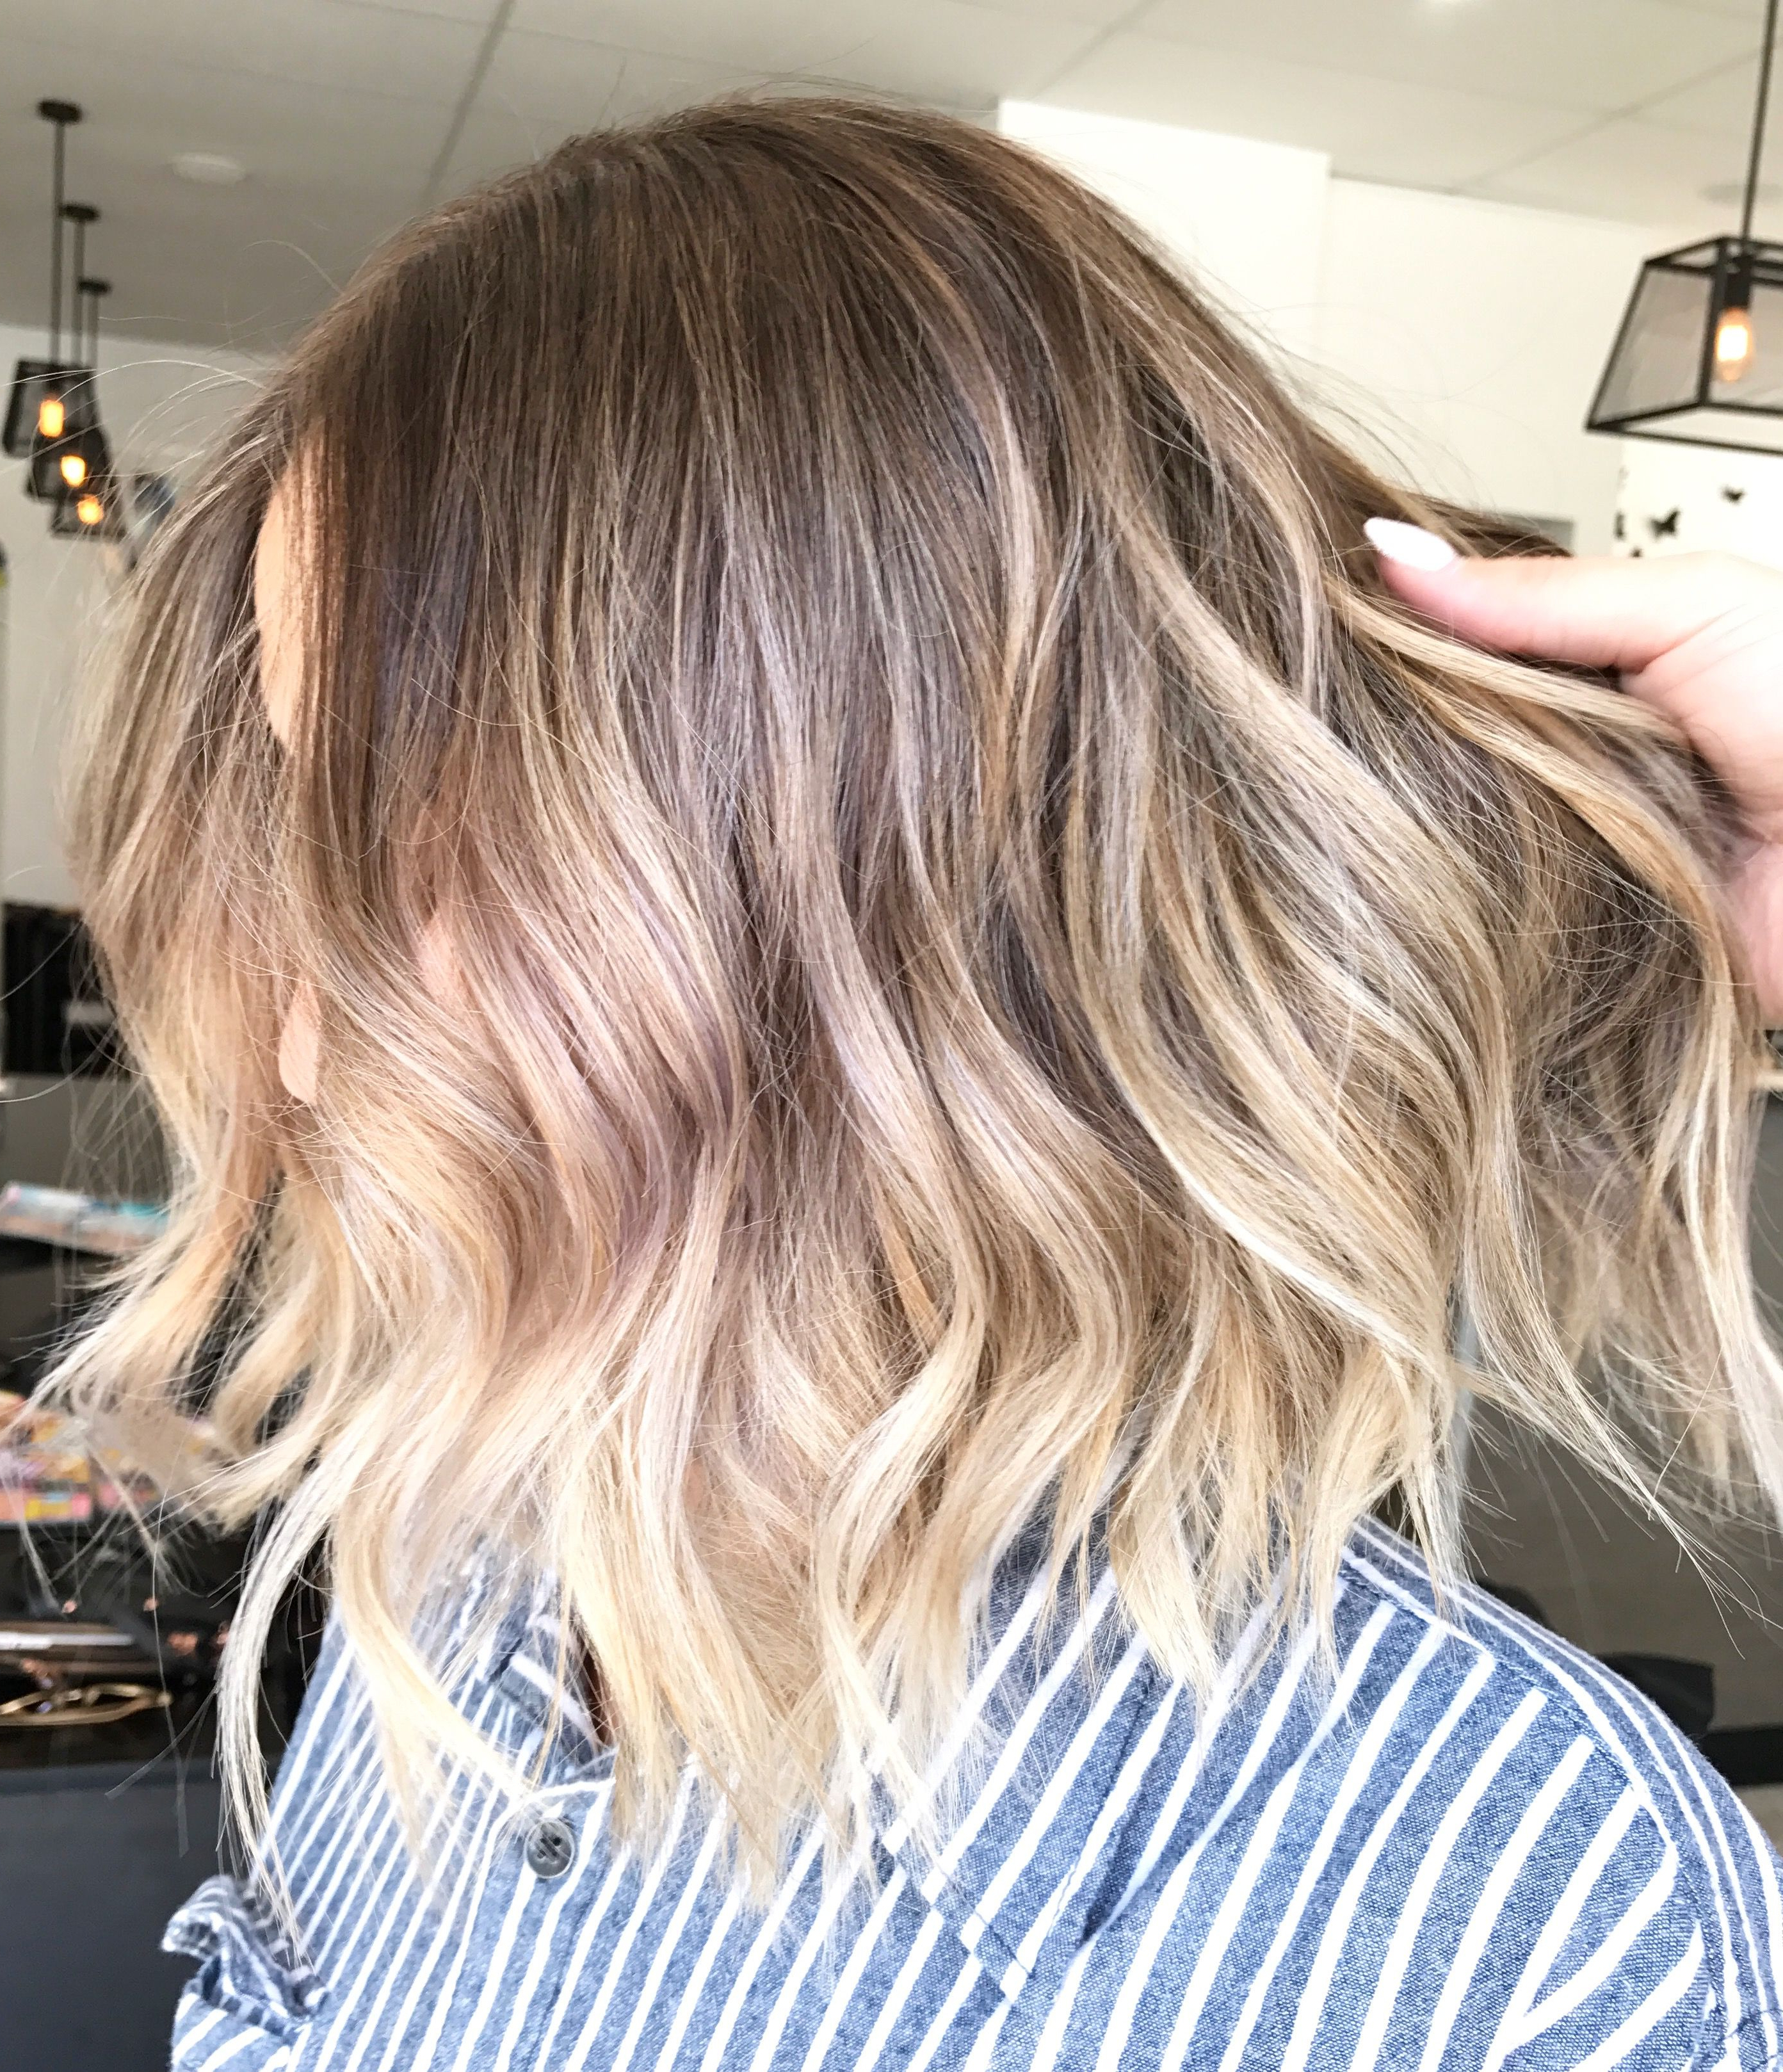 Blonde Balayage Short Lob Multidimensional Colour Lived In Hair For Curly Dark Brown Bob Hairstyles With Partial Balayage (View 6 of 20)